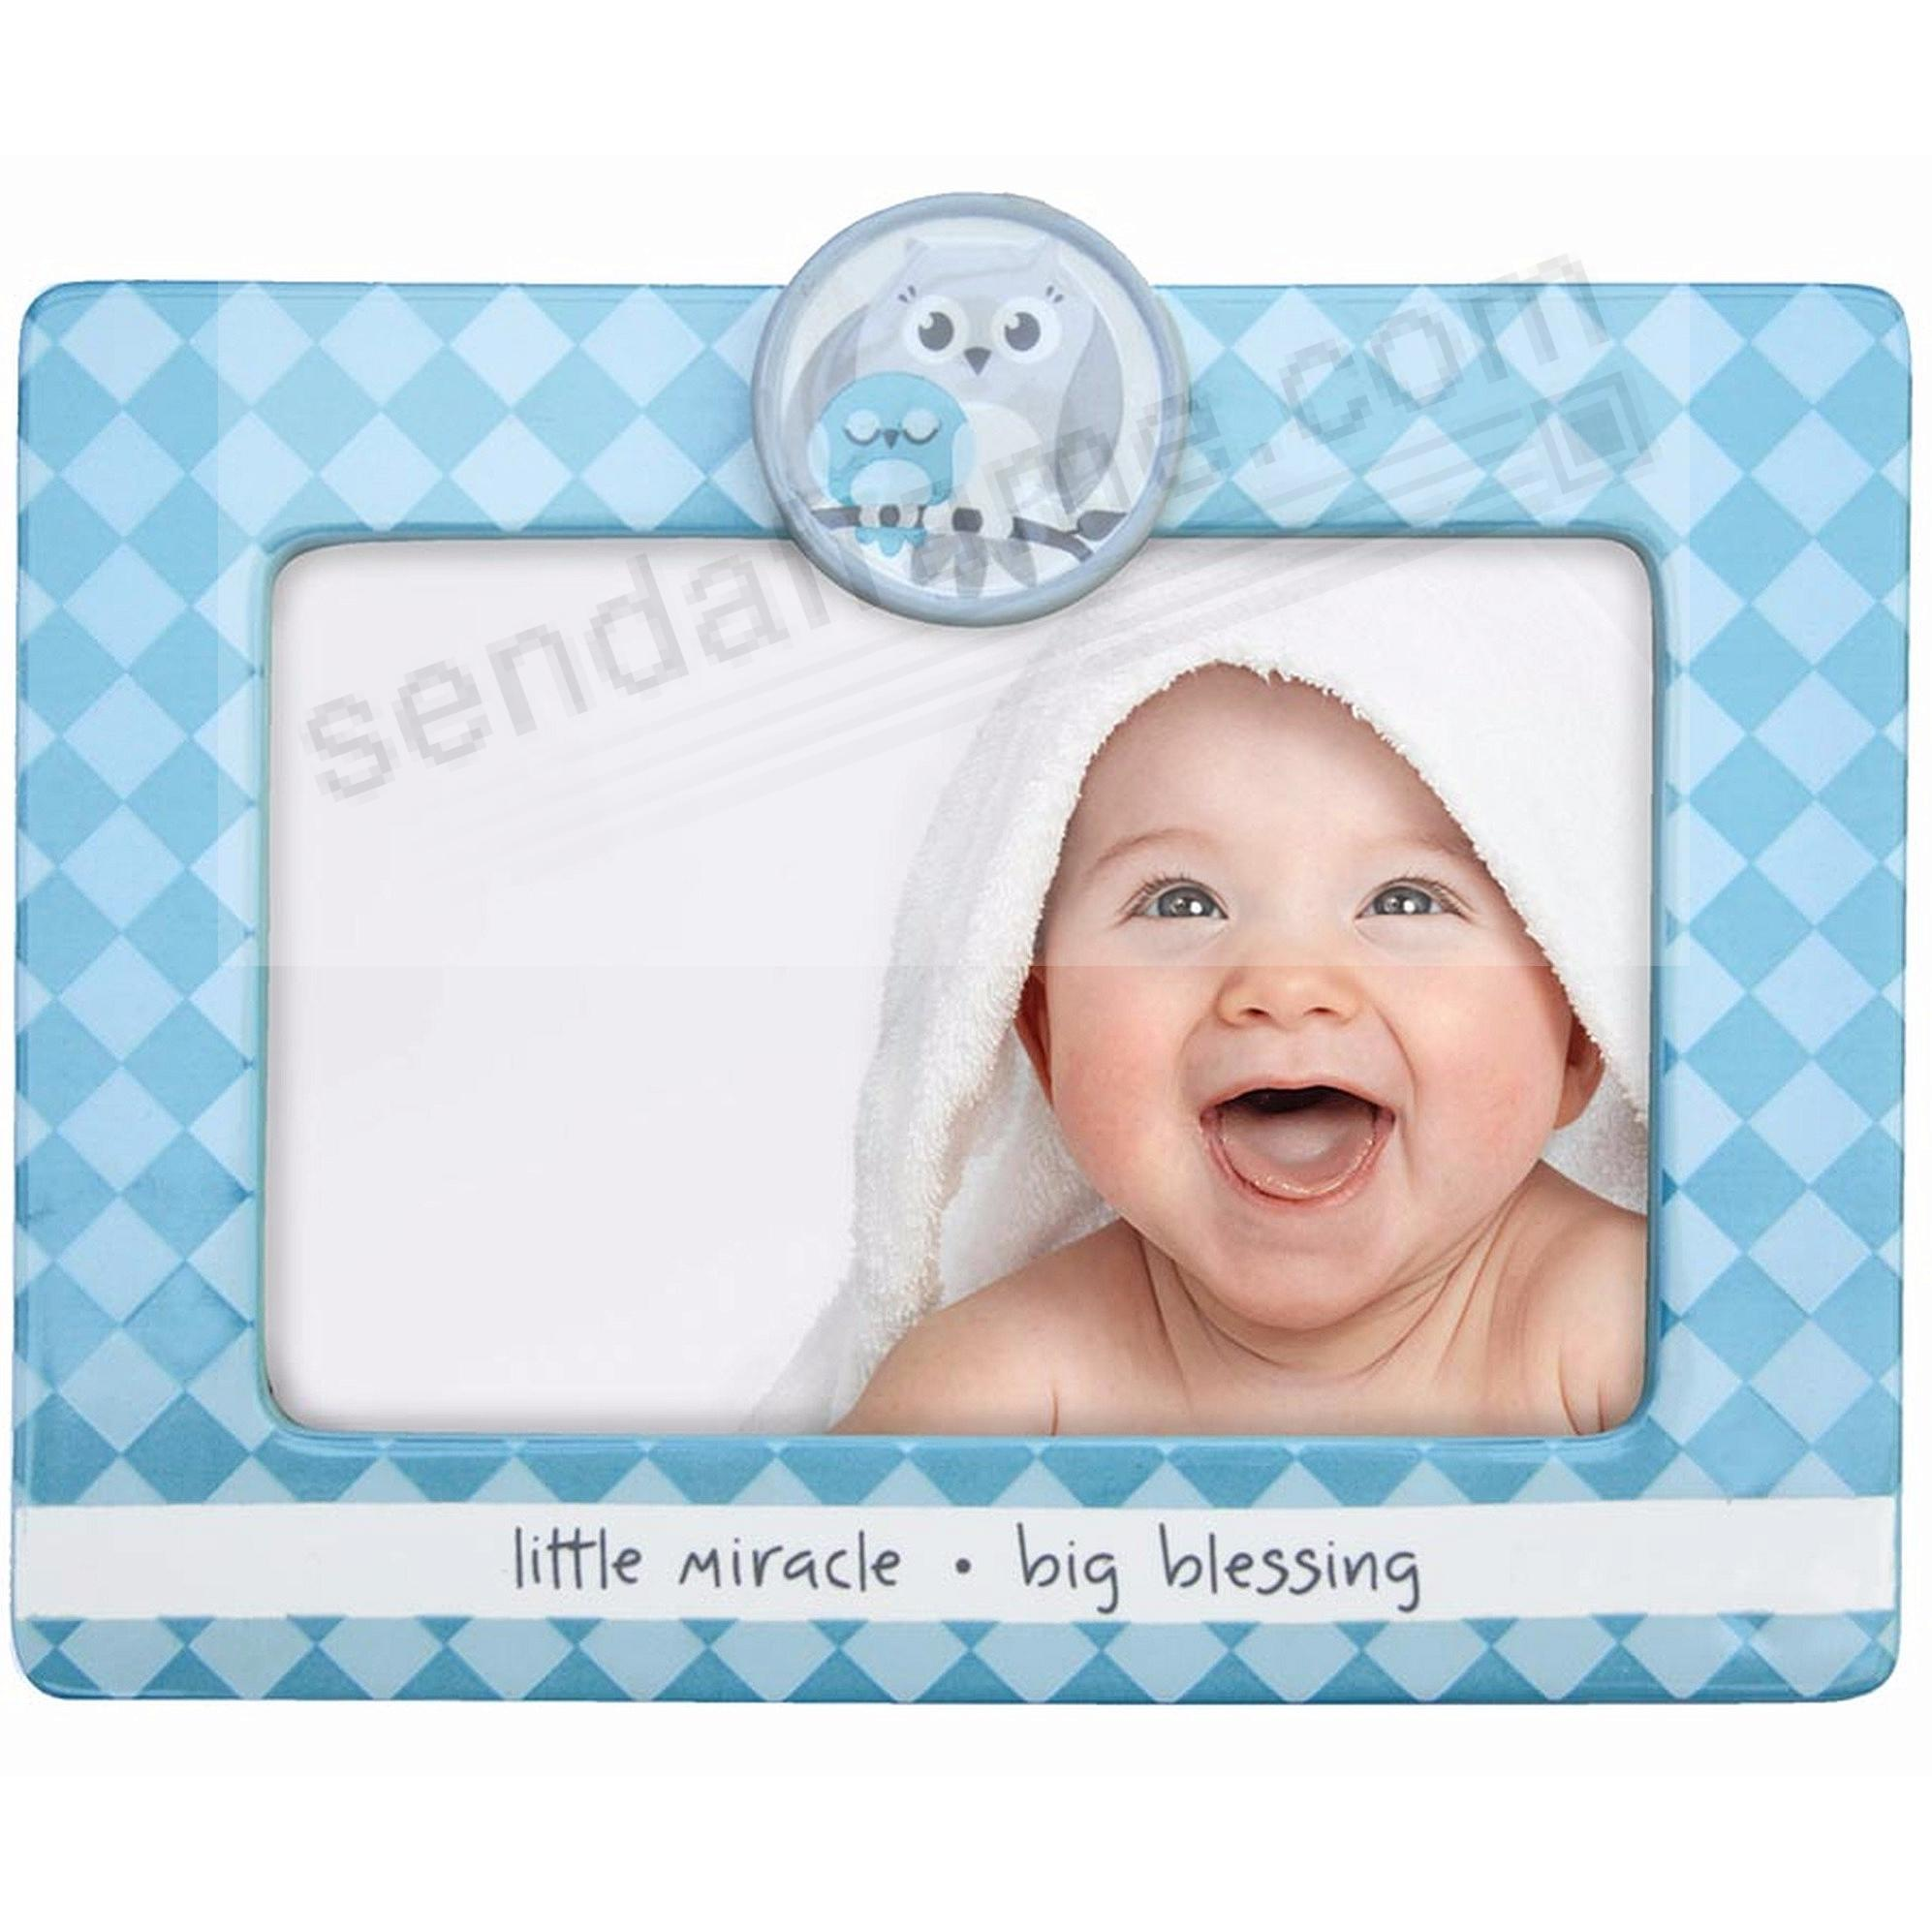 Adorable little miracle big blessing blue baby frame picture adorable little miracle big blessing blue baby frame jeuxipadfo Images